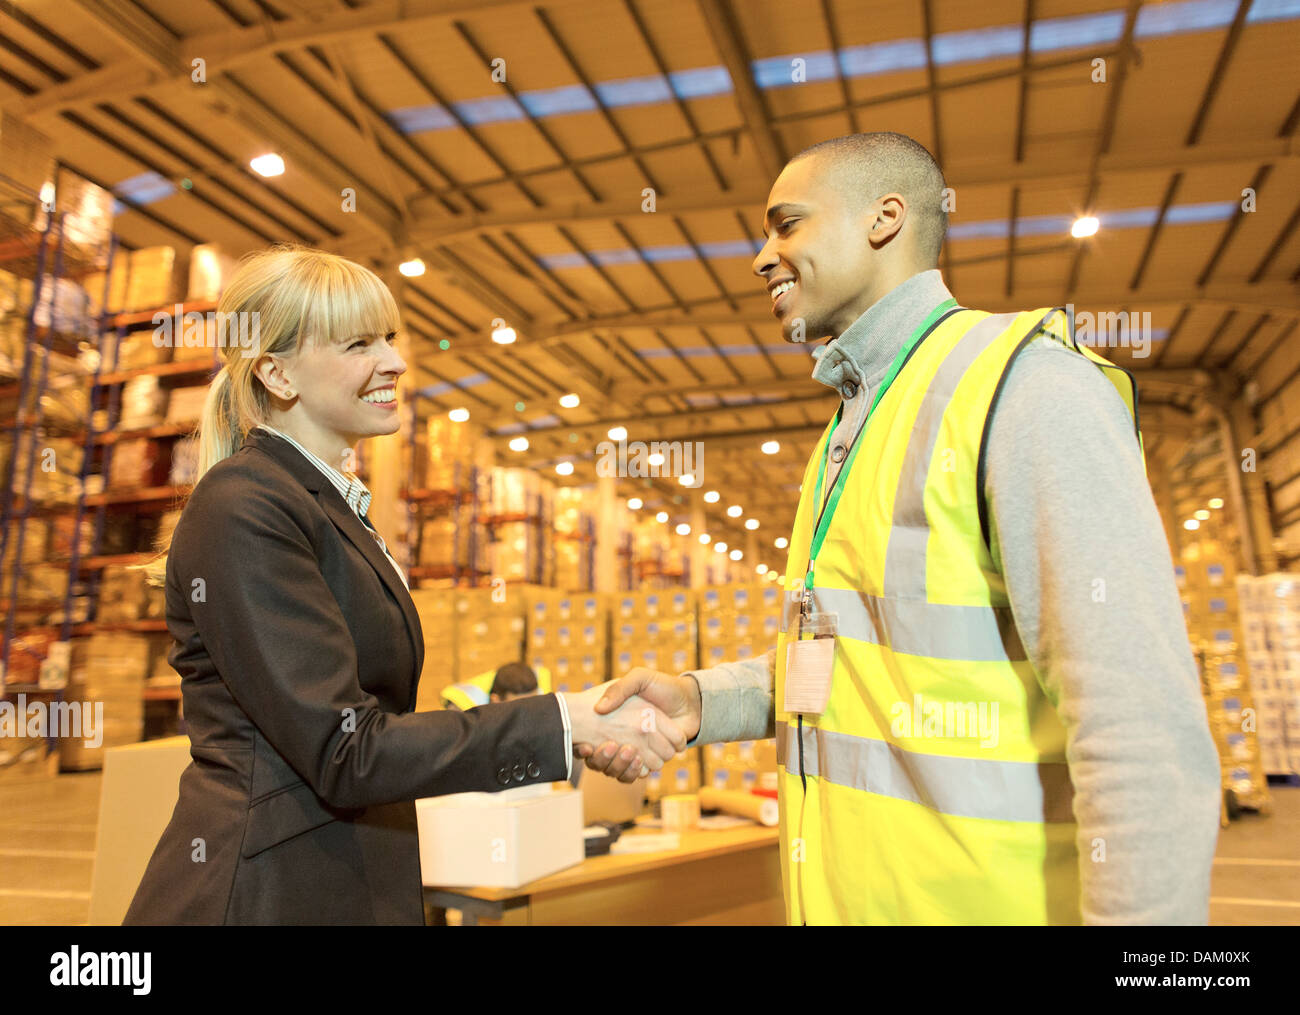 Businesswoman and worker shaking hands in warehouse Stock Photo